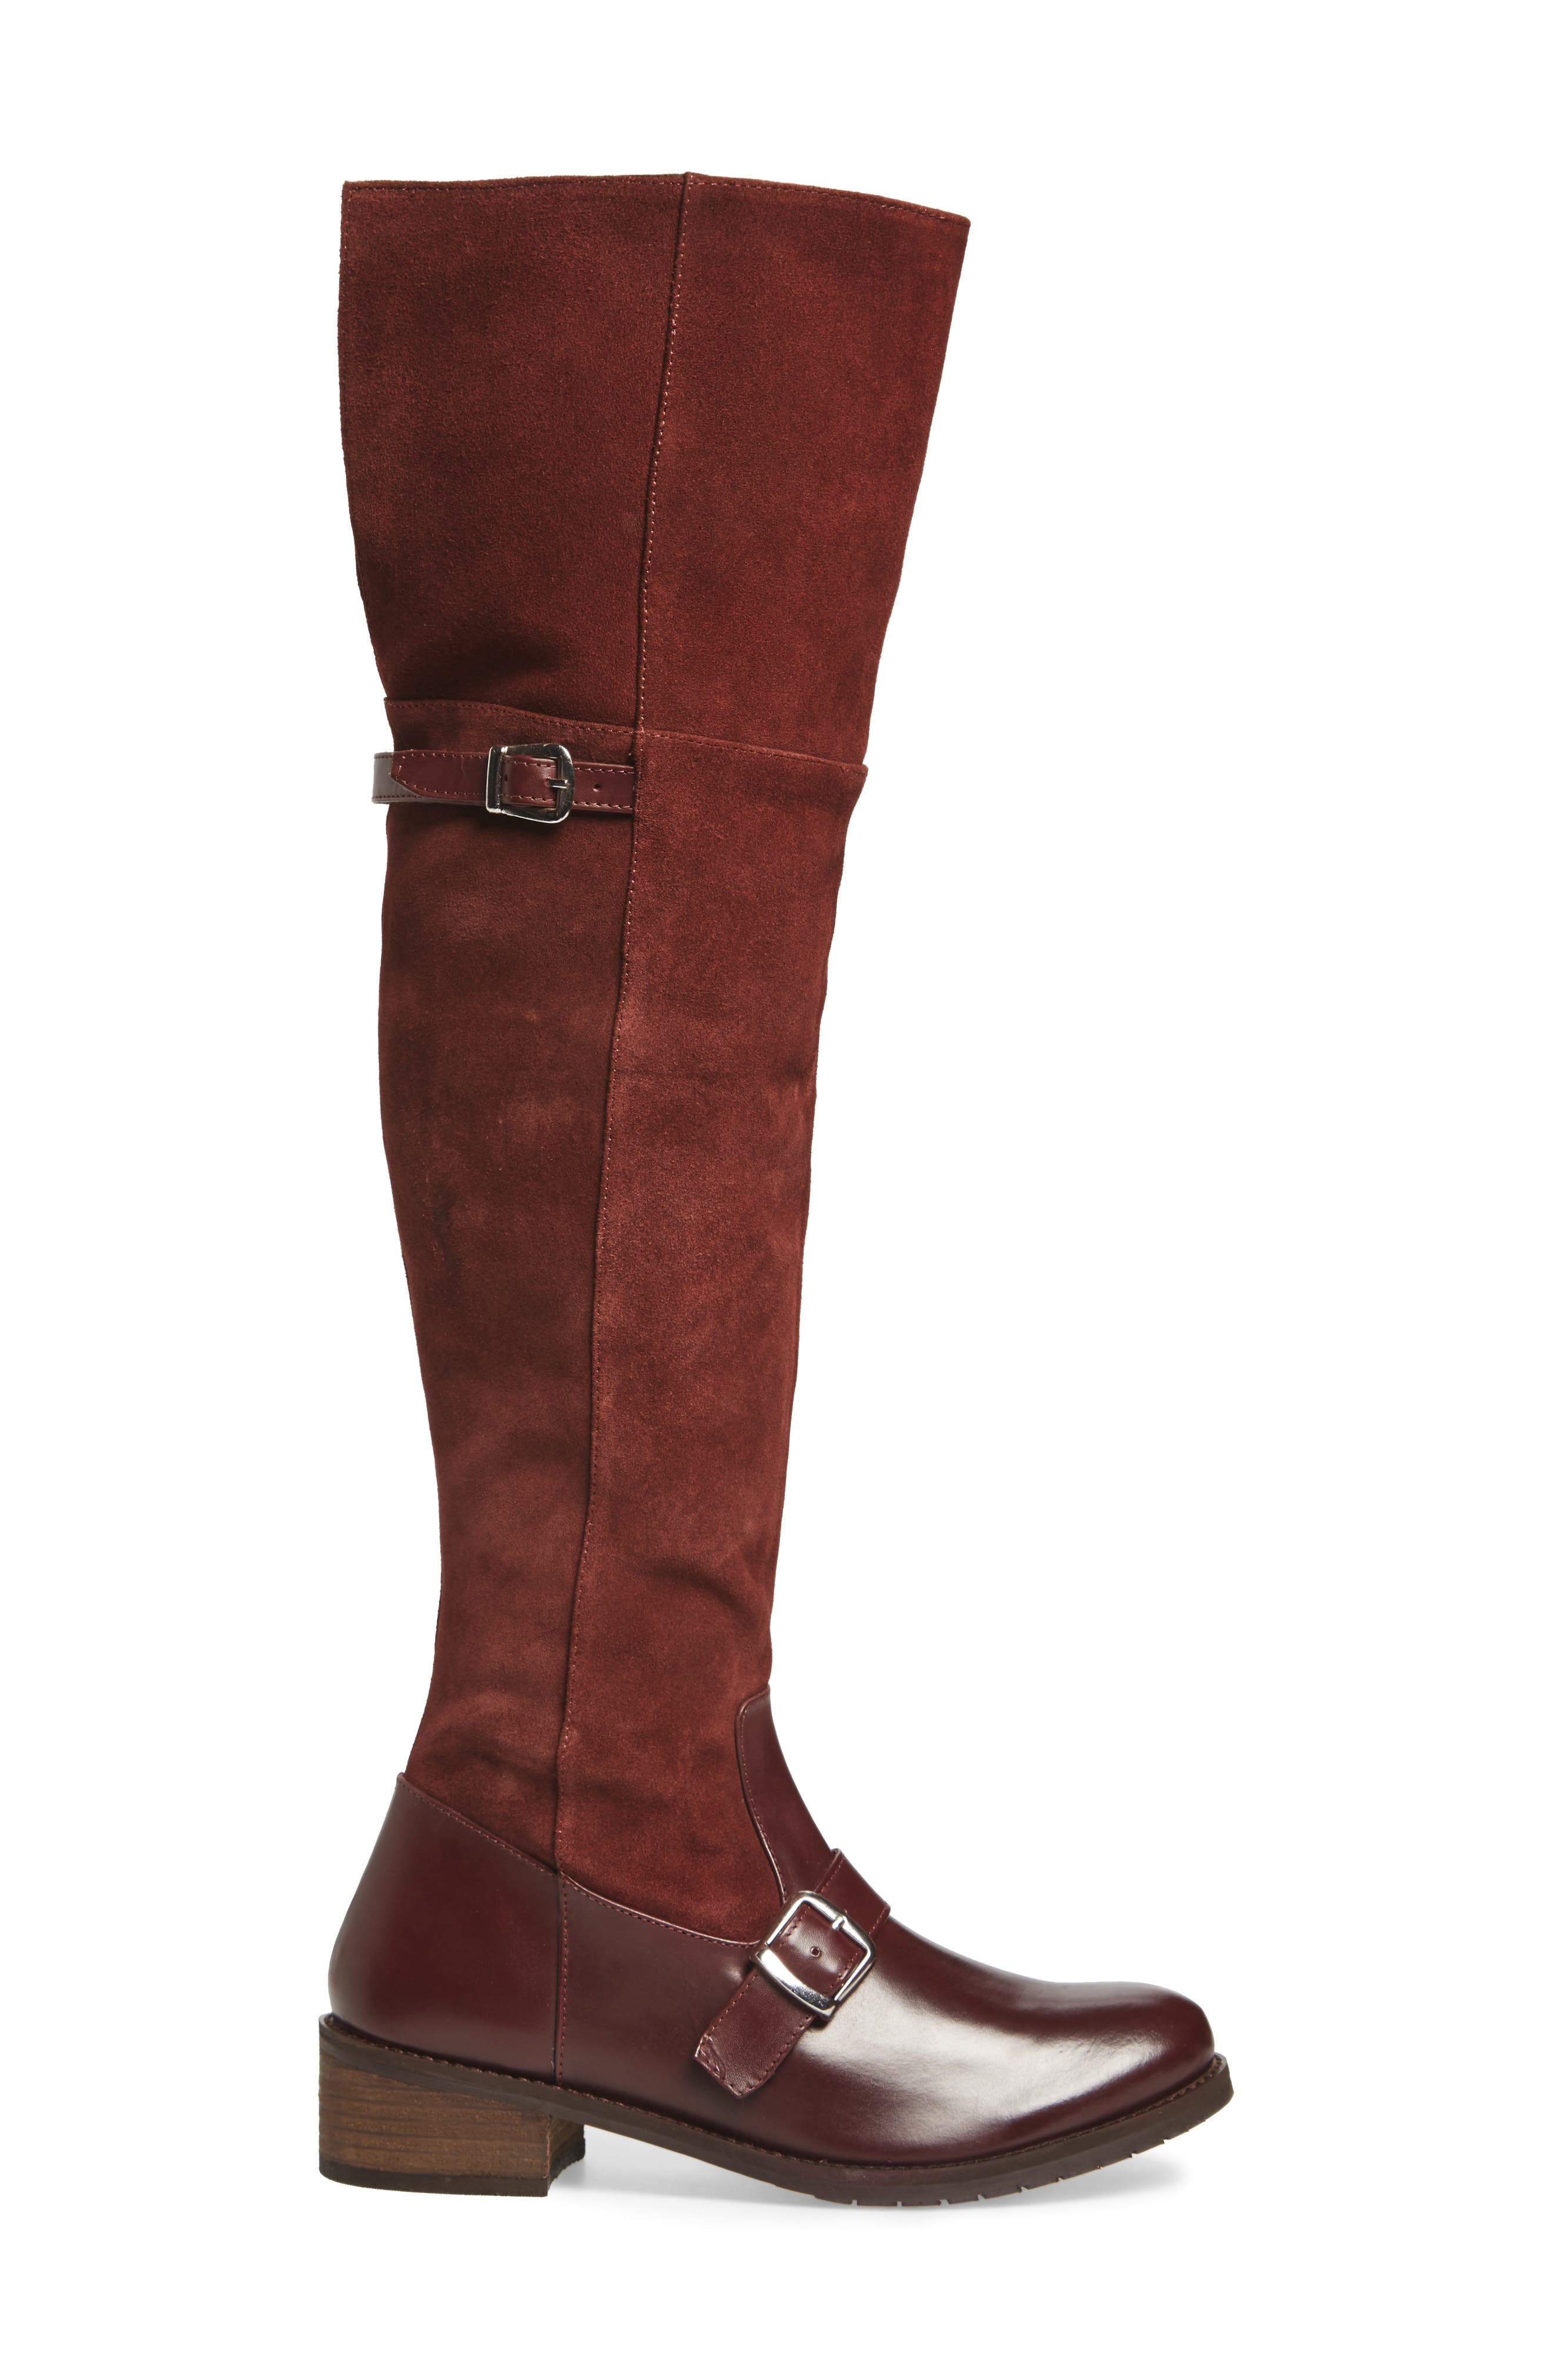 Lola Over the Knee Boot,                             Alternate thumbnail 3, color,                             Wine Suede